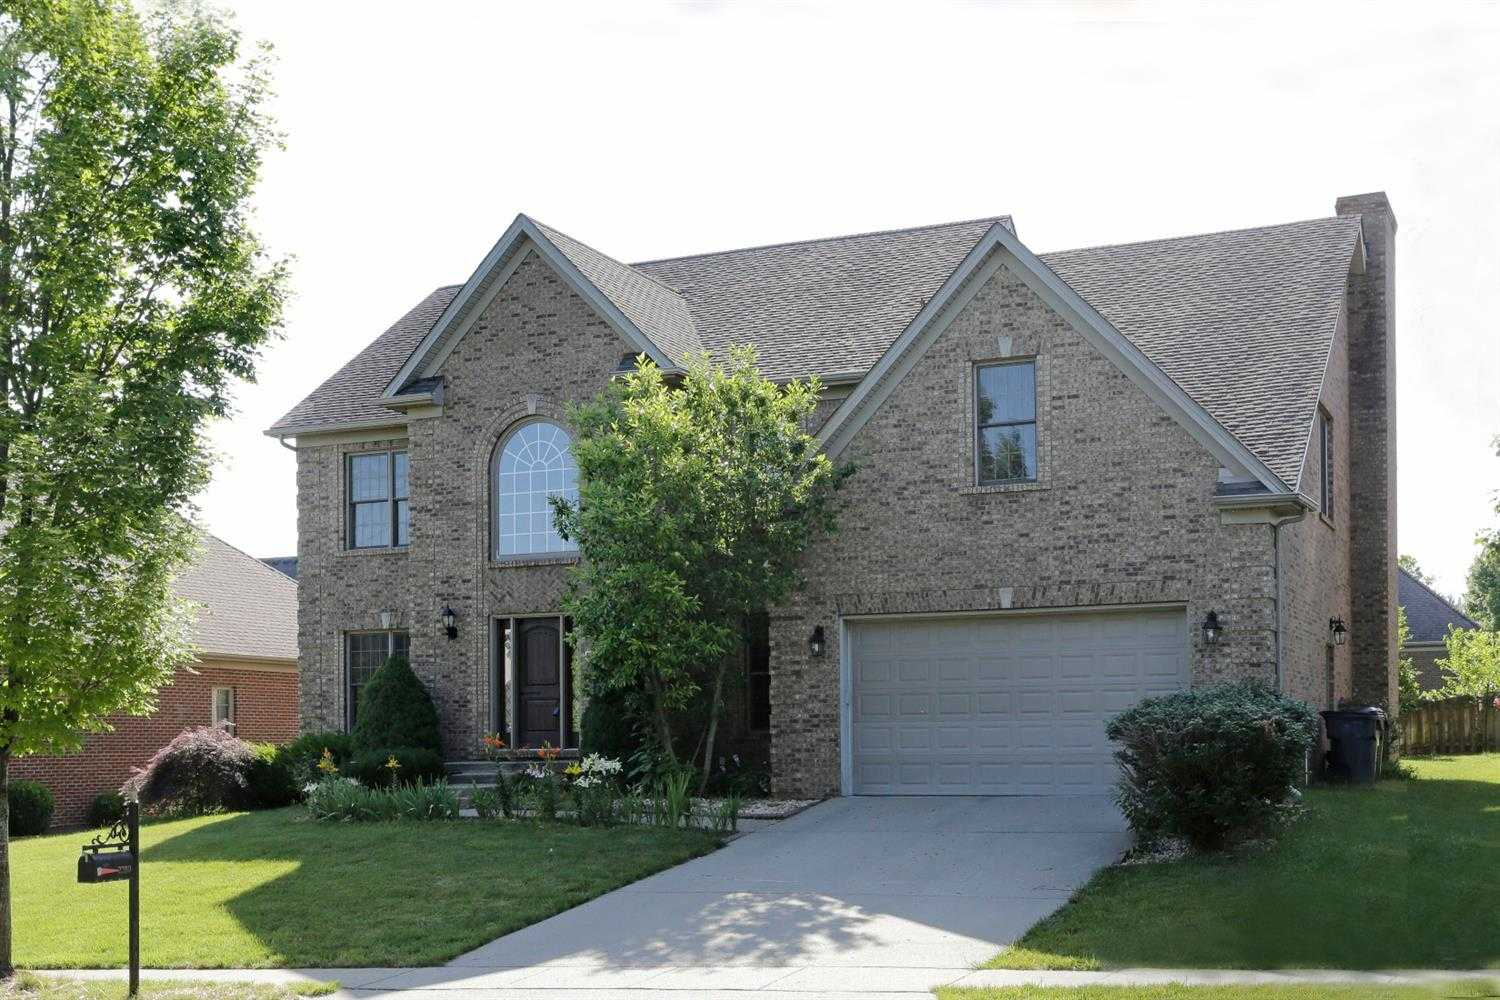 $599,000 - 5Br/4Ba -  for Sale in Beaumont Reserve, Lexington